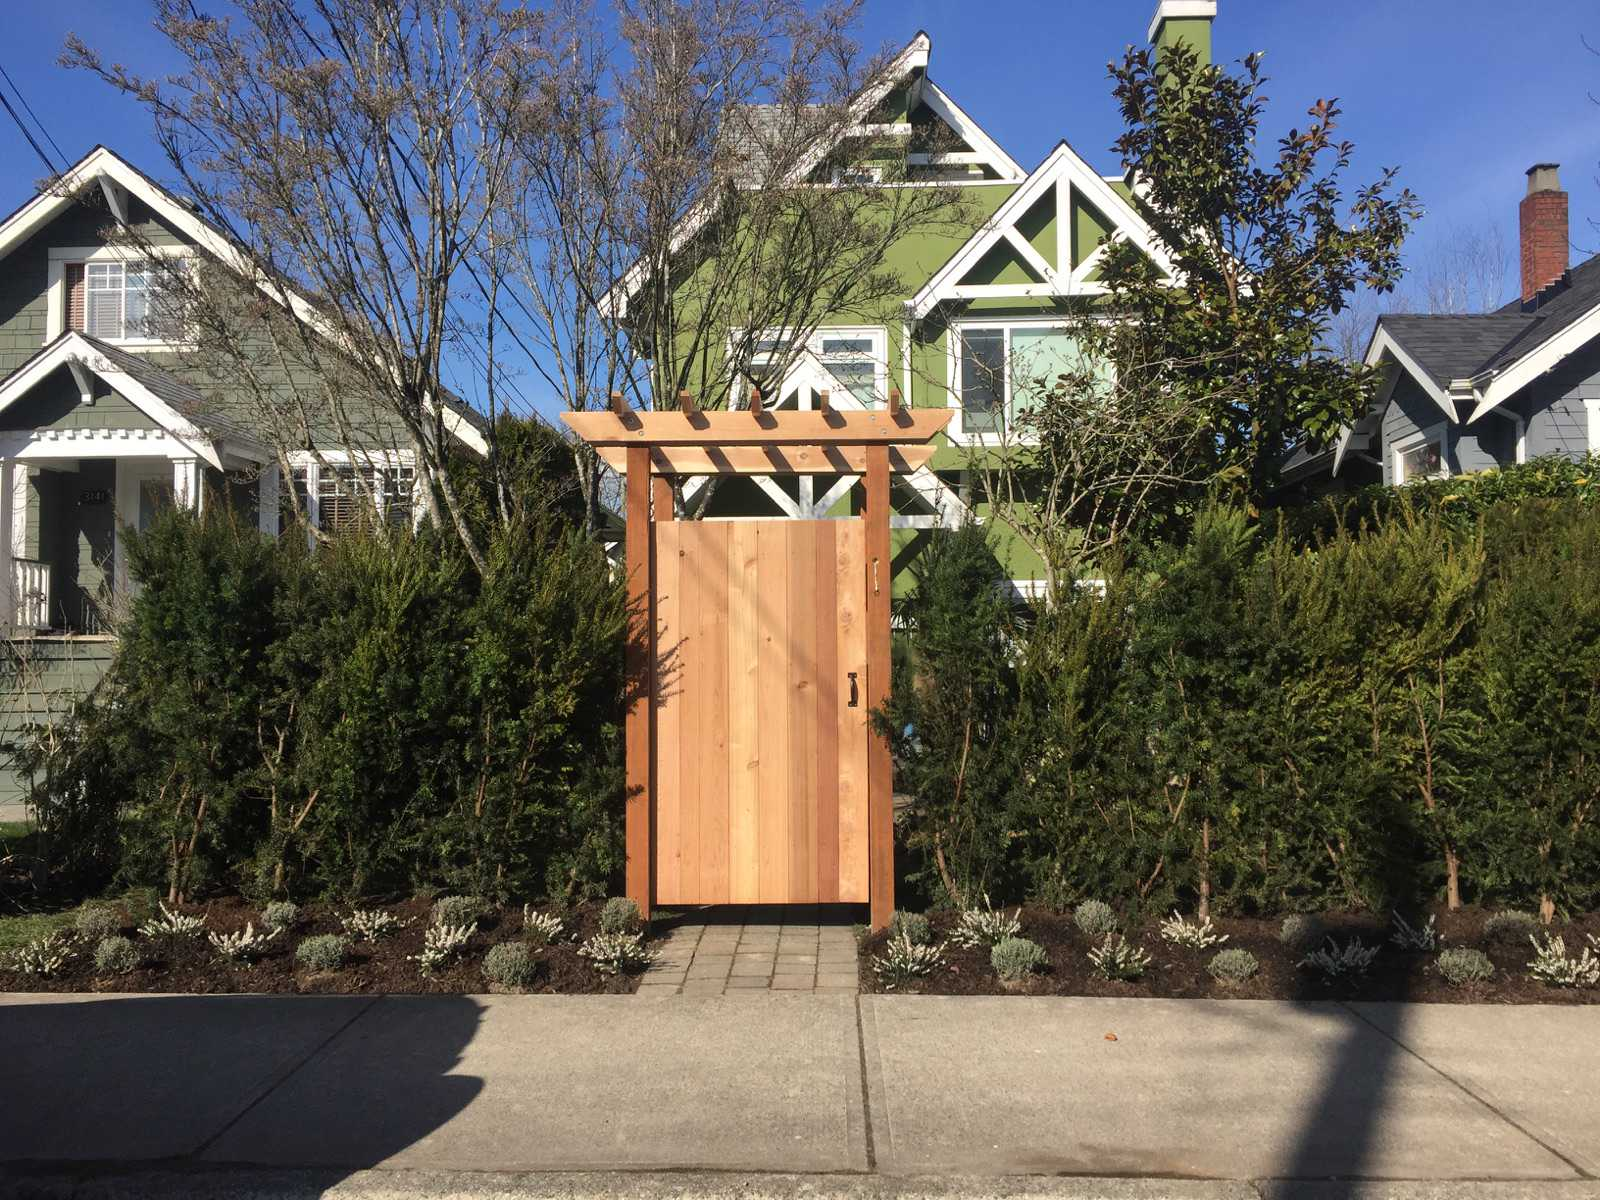 New yew hedge pergola and gate landscaping vancouver BC